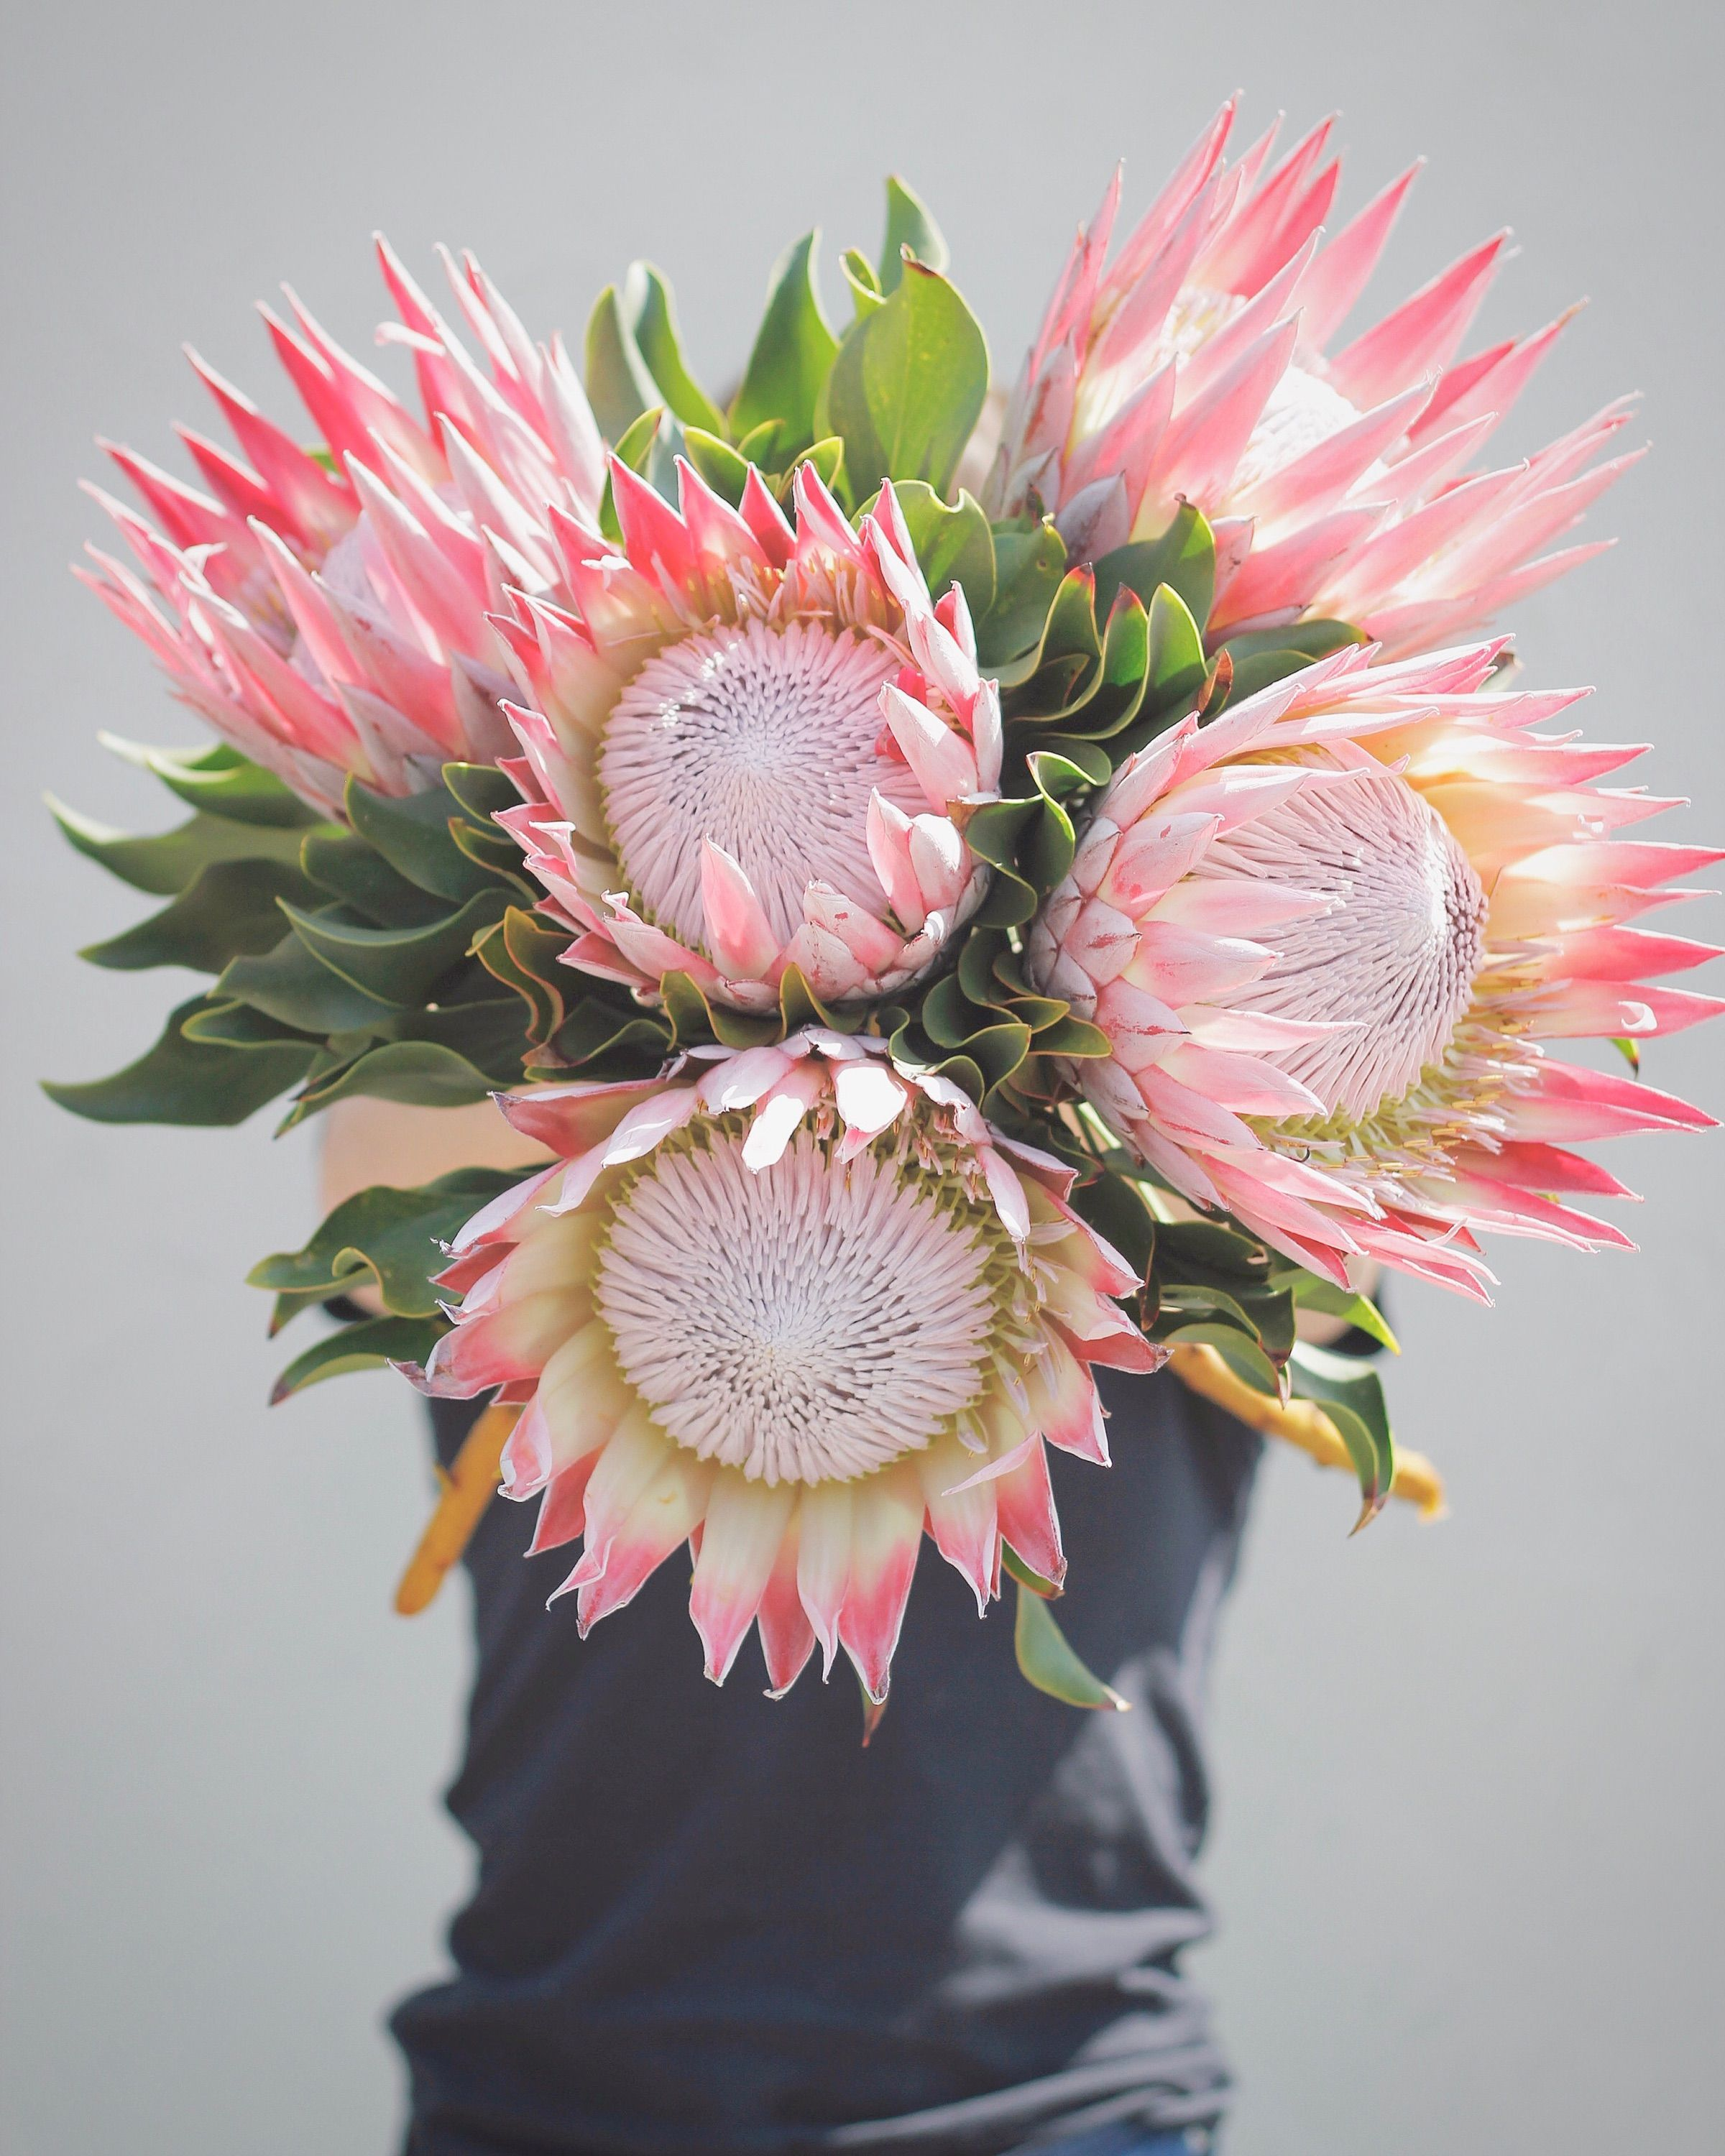 The King Of Proteas Stems Floral Design Productions Austin Wedding And Events Florist Central Texas Flori Light Pink Flowers Pink Flowers Floral Design